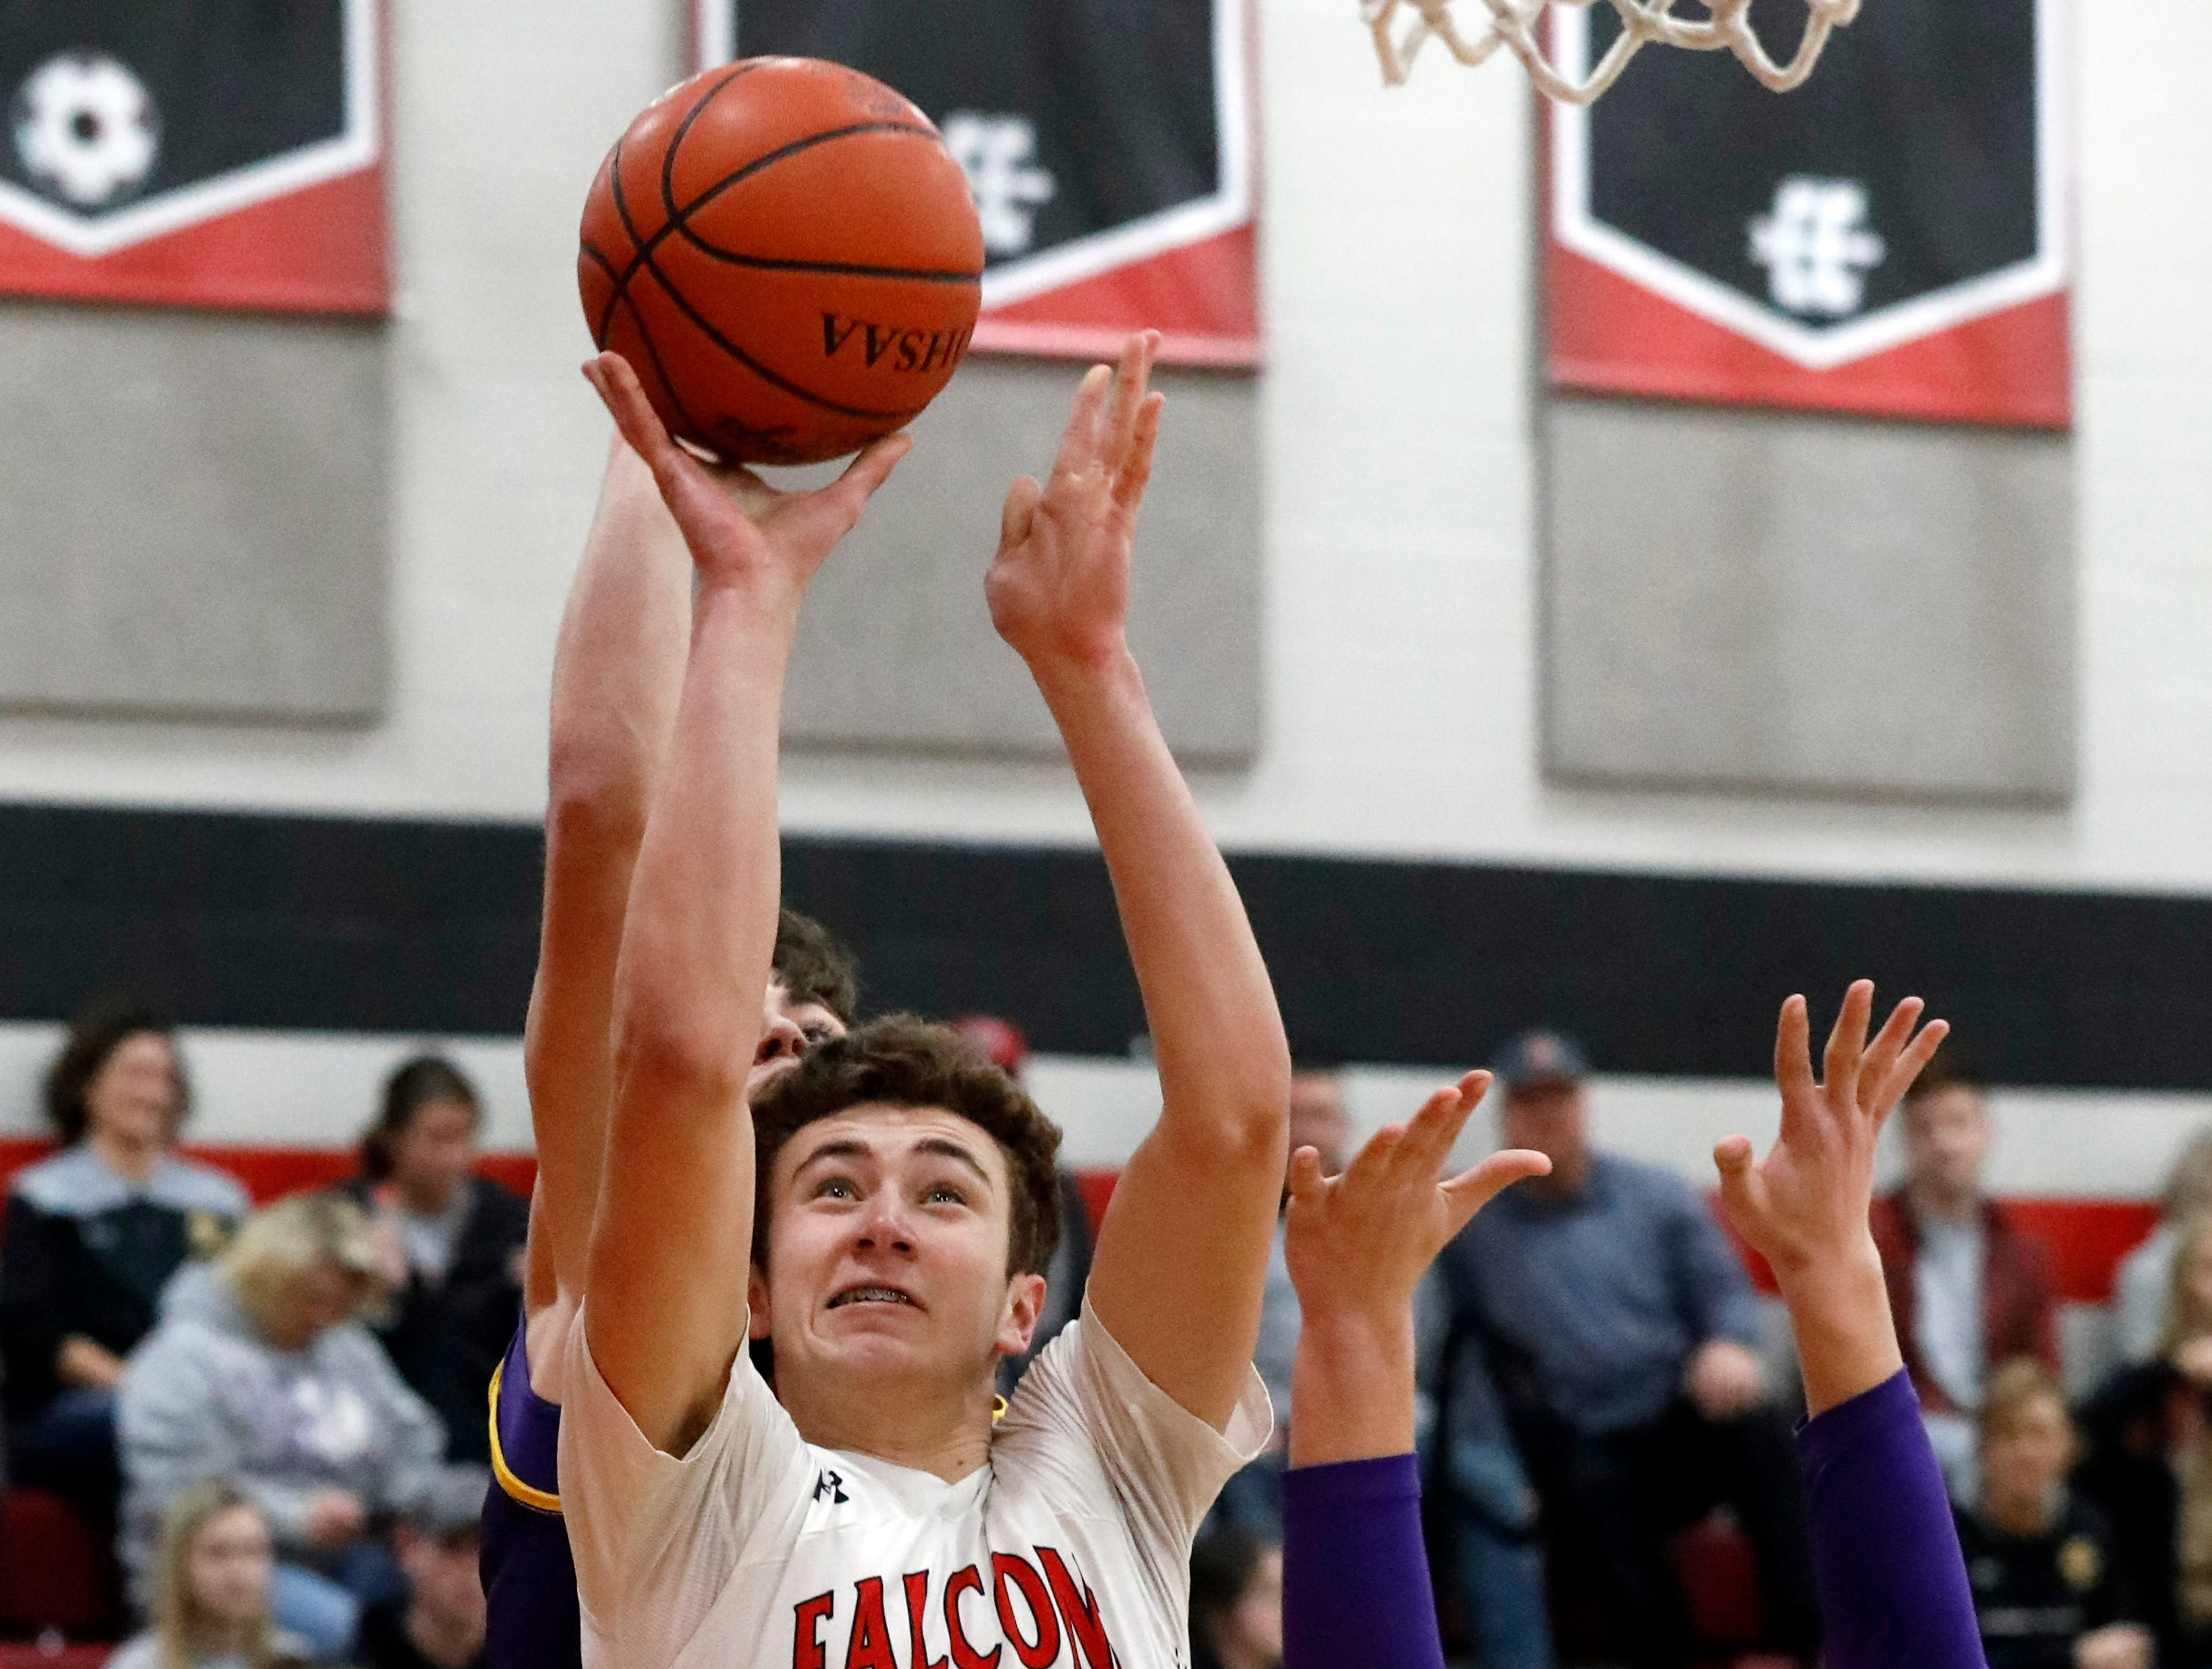 Fairfield Union's Huston Harrah takes shoots the ball during Friday night's game, Jan. 18, 2019, against Bloom-Carroll at Fairfield Union High School in Rushville. The Falcons won the game 42-31.